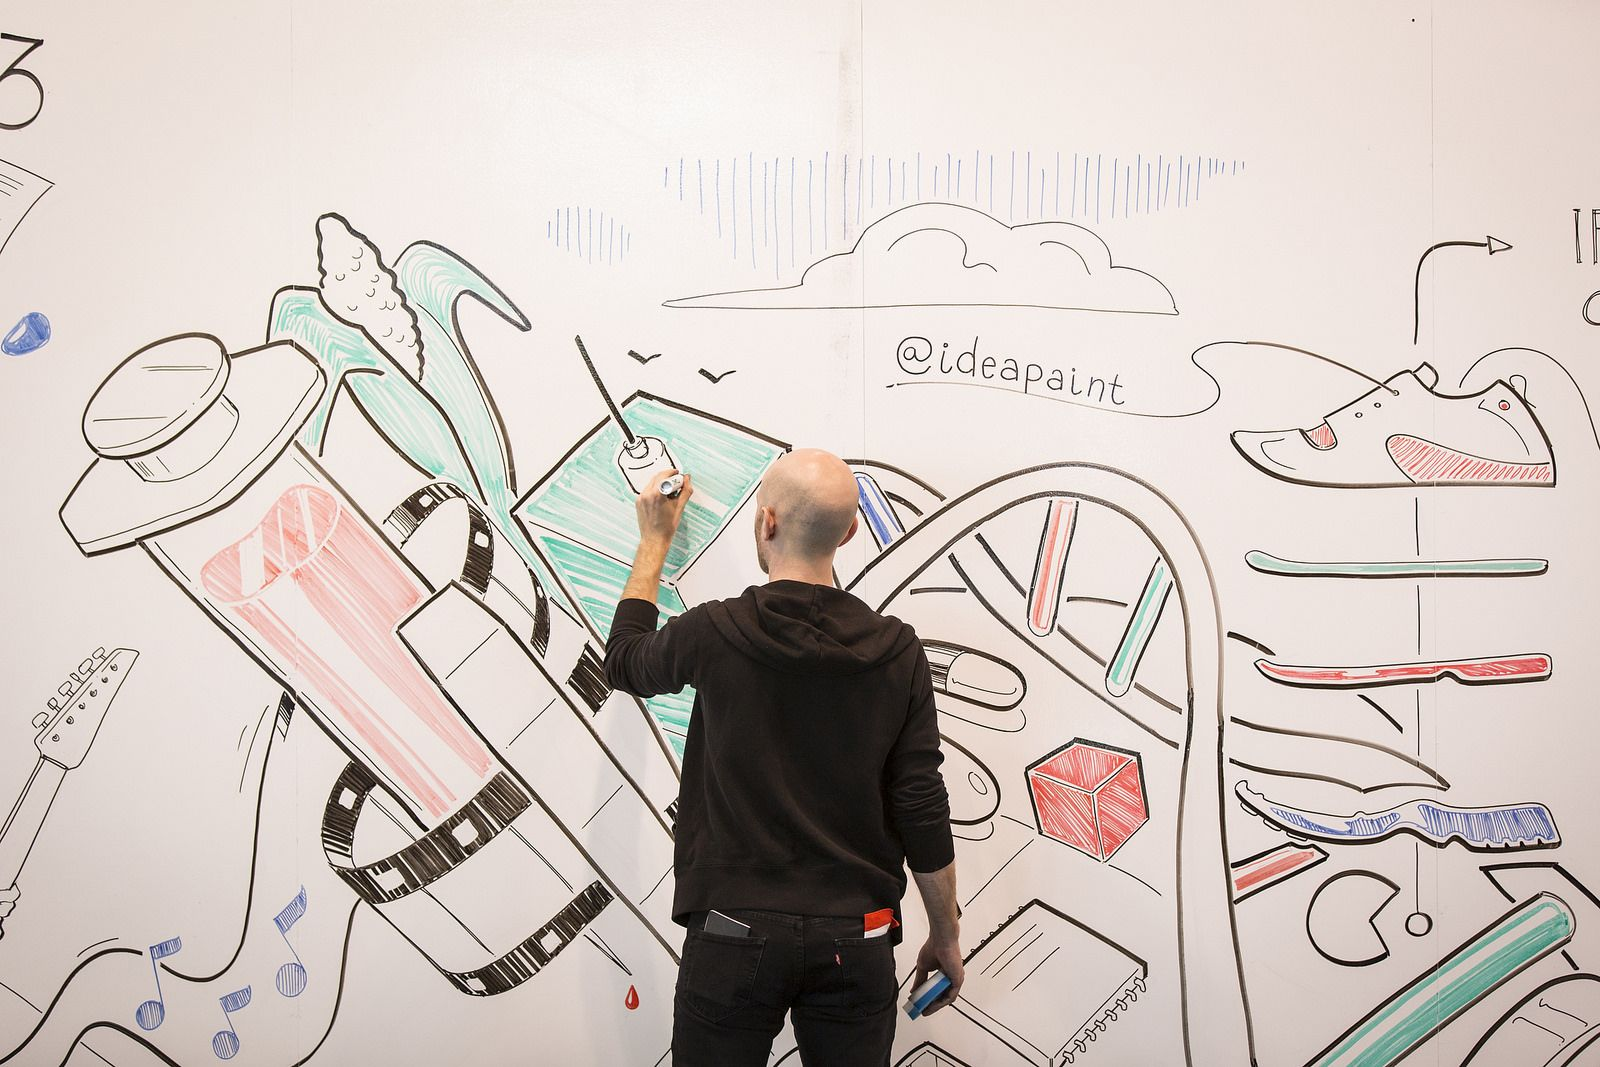 Artist Derek Cascio colors on the walls of the Vancouver Convention Center, thanks to IdeaPaint—which turns any wall into a dry erase board. Photo: Ryan Lash/TED